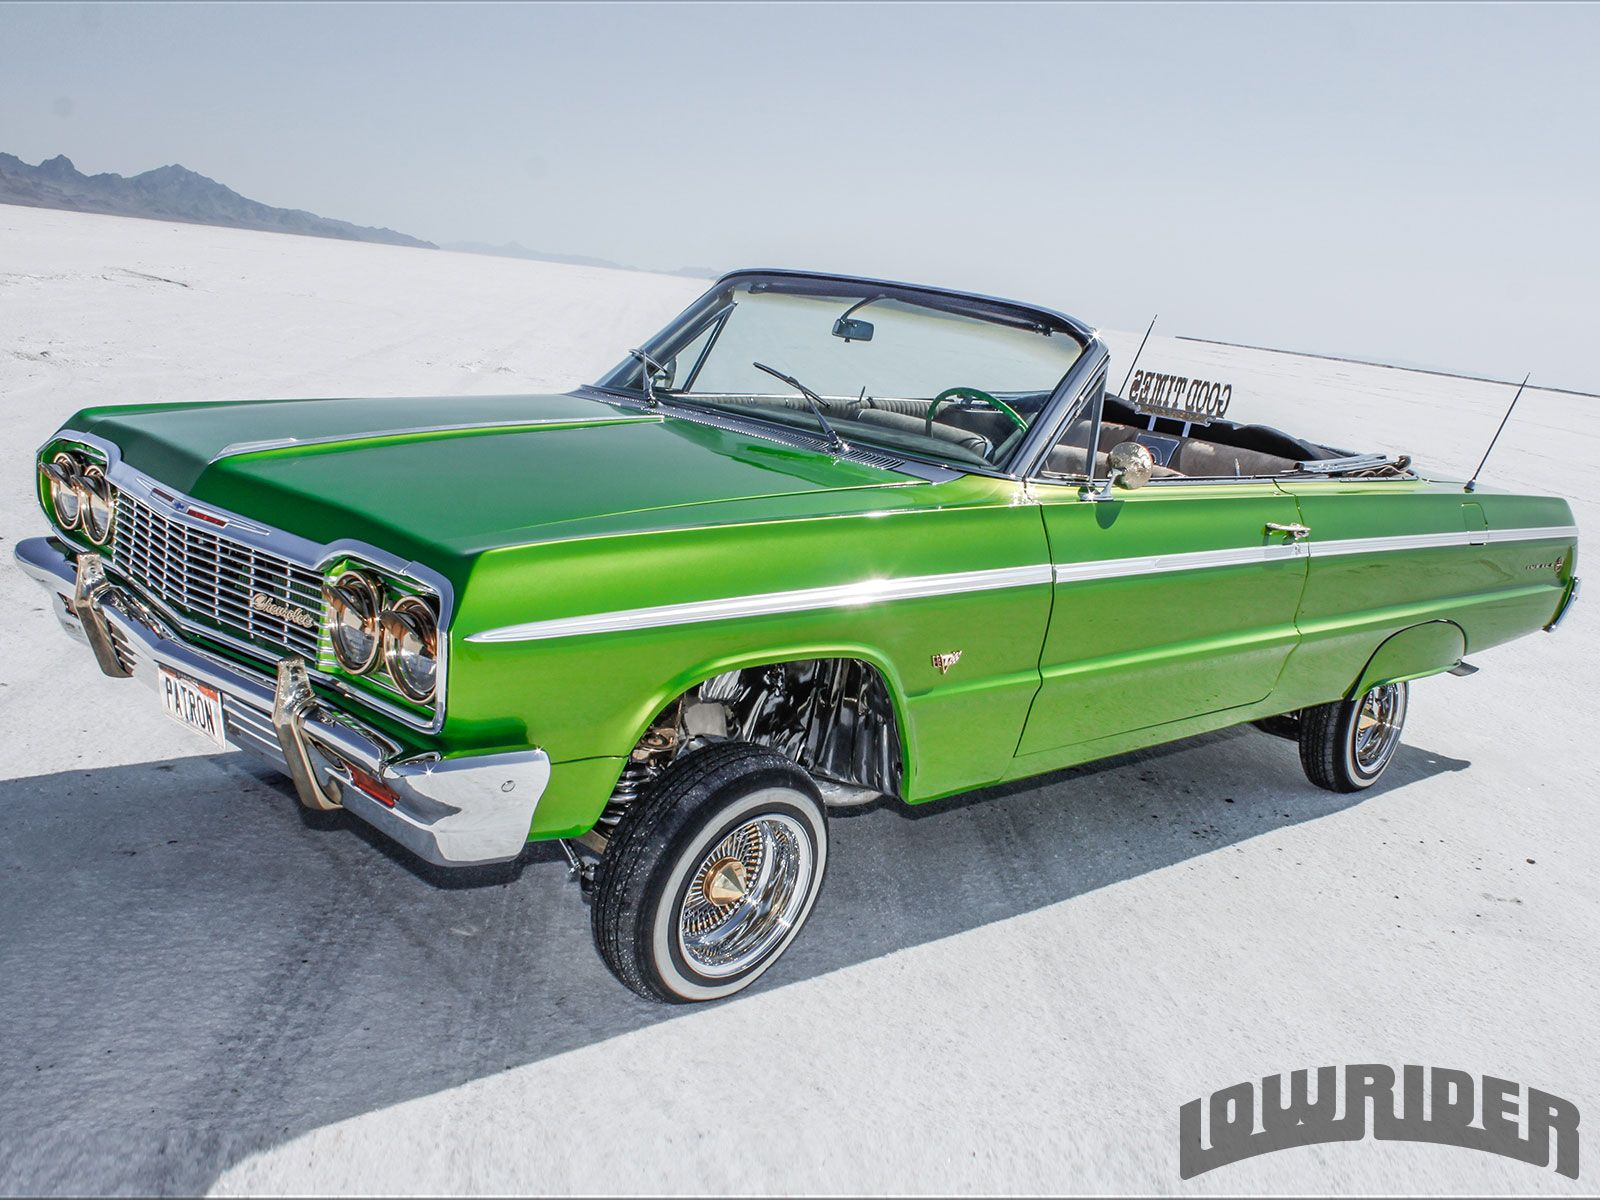 While he wanted to build the perfect 1964 chevrolet impala jose cornejo decided on building the more elusive convertible instead so as to stand out more